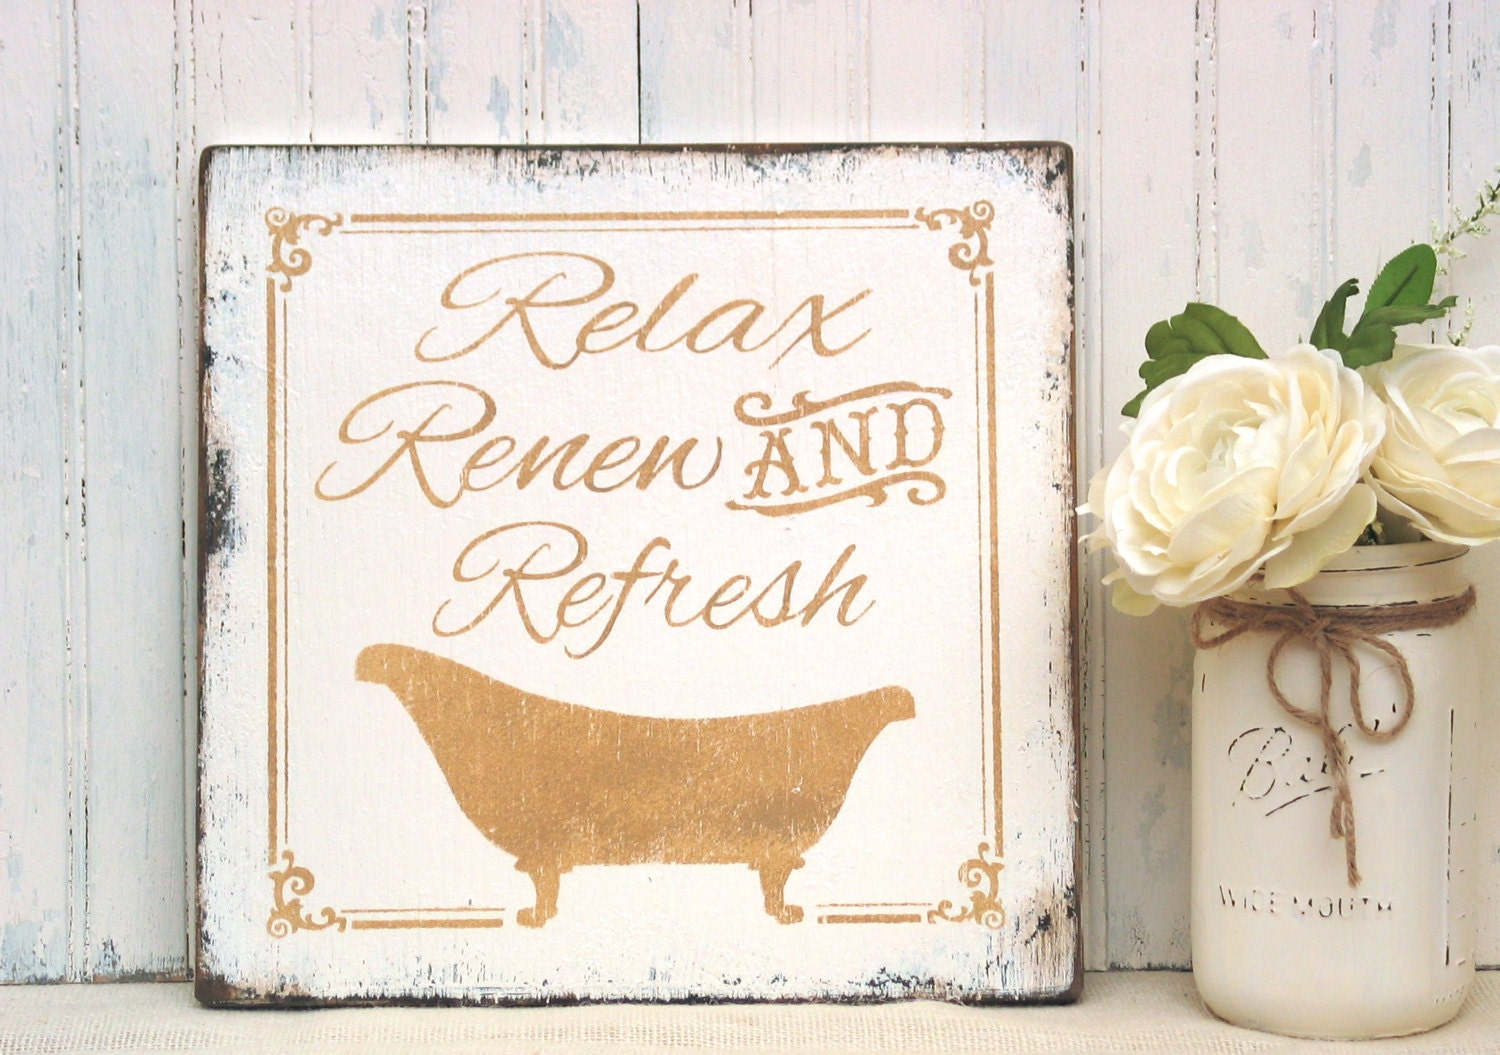 Relax renew refresh bathroom sign rustic wood bath sign for Renew bathroom